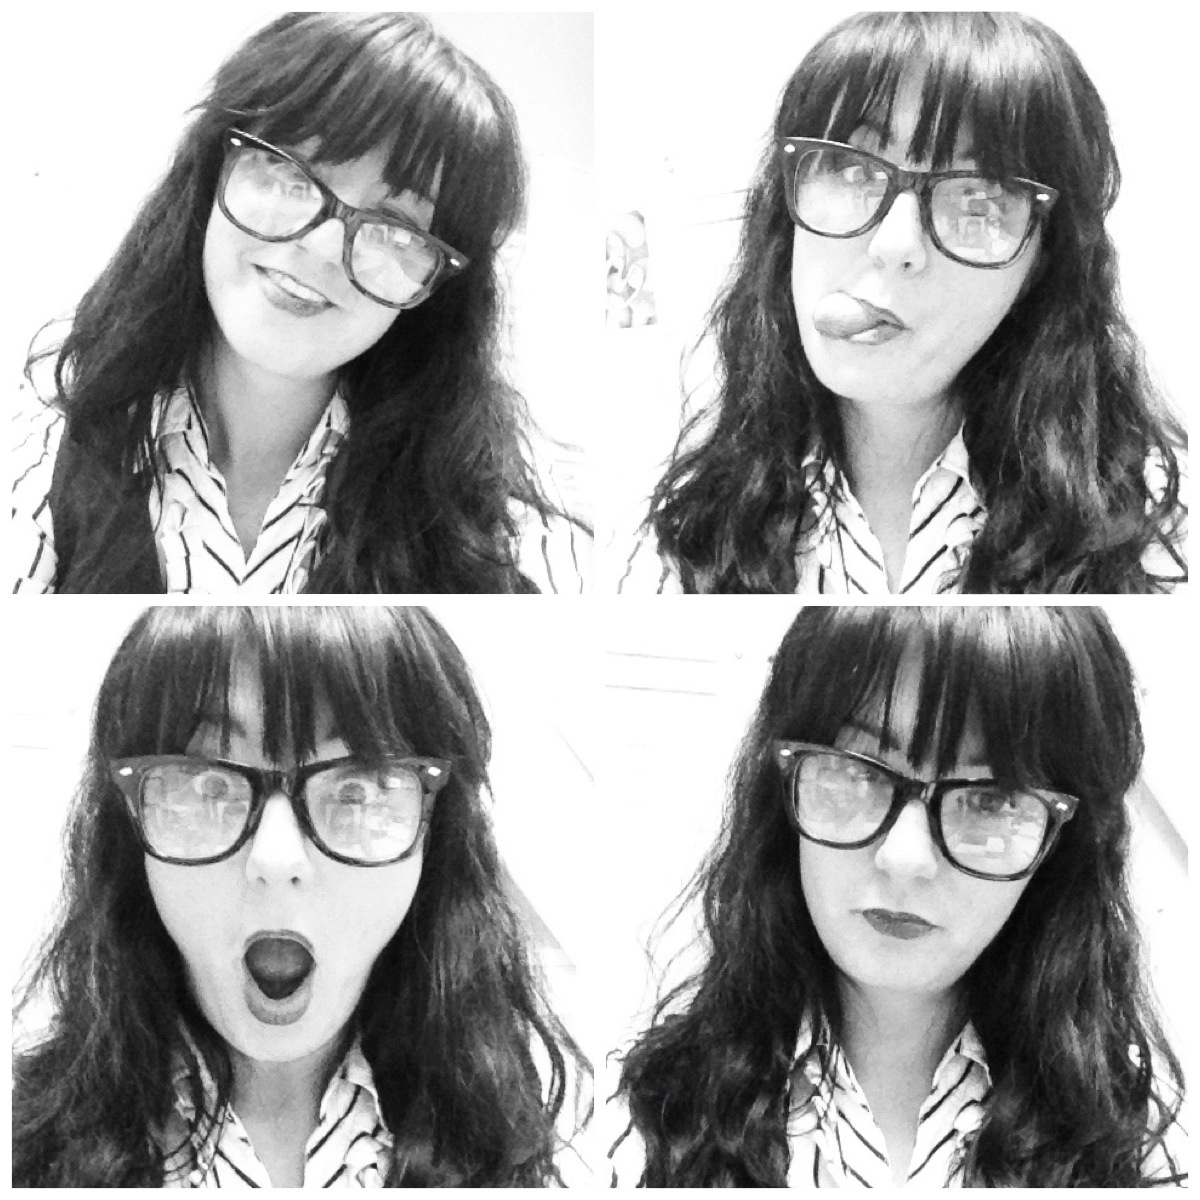 587b52bda6 47 Find some Zooey Deschanel New Girl Jess Inspired GlassesZooey Deschanel  Glasses